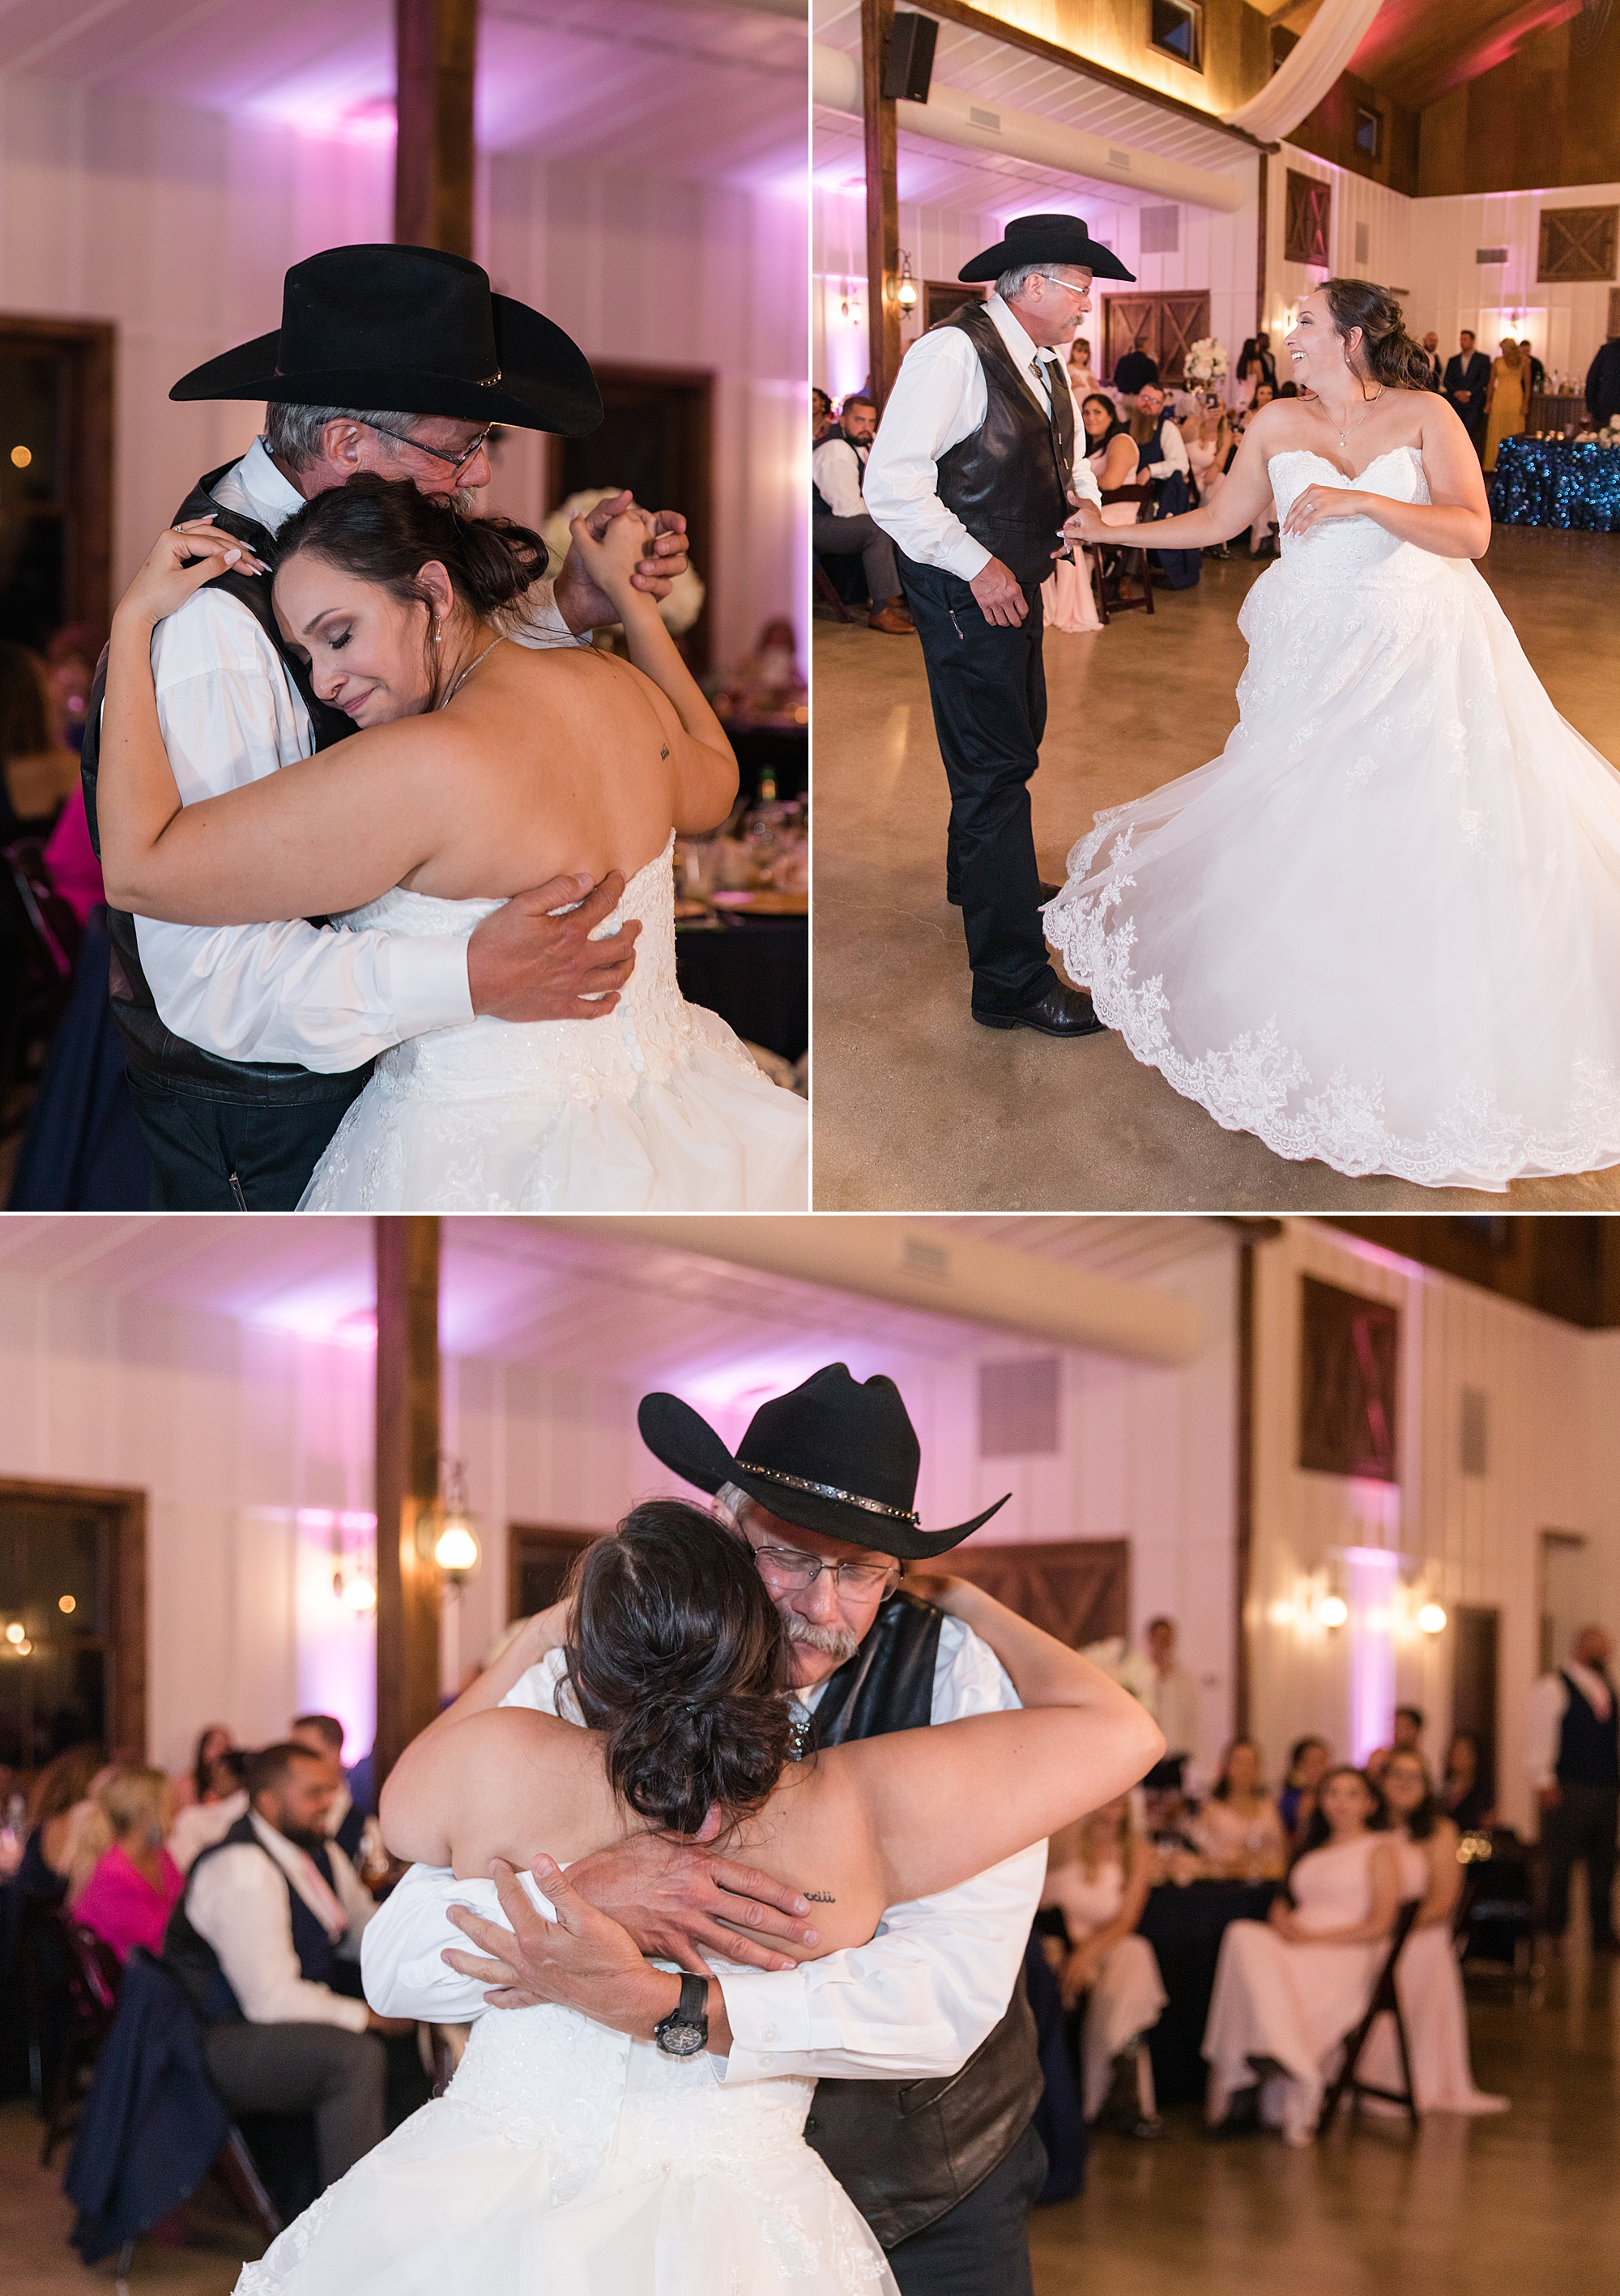 Wedding-Photographer-Bulverde-Texas-Western-Sky-Event-Venue-Carly-Barton-Photography_0077.jpg